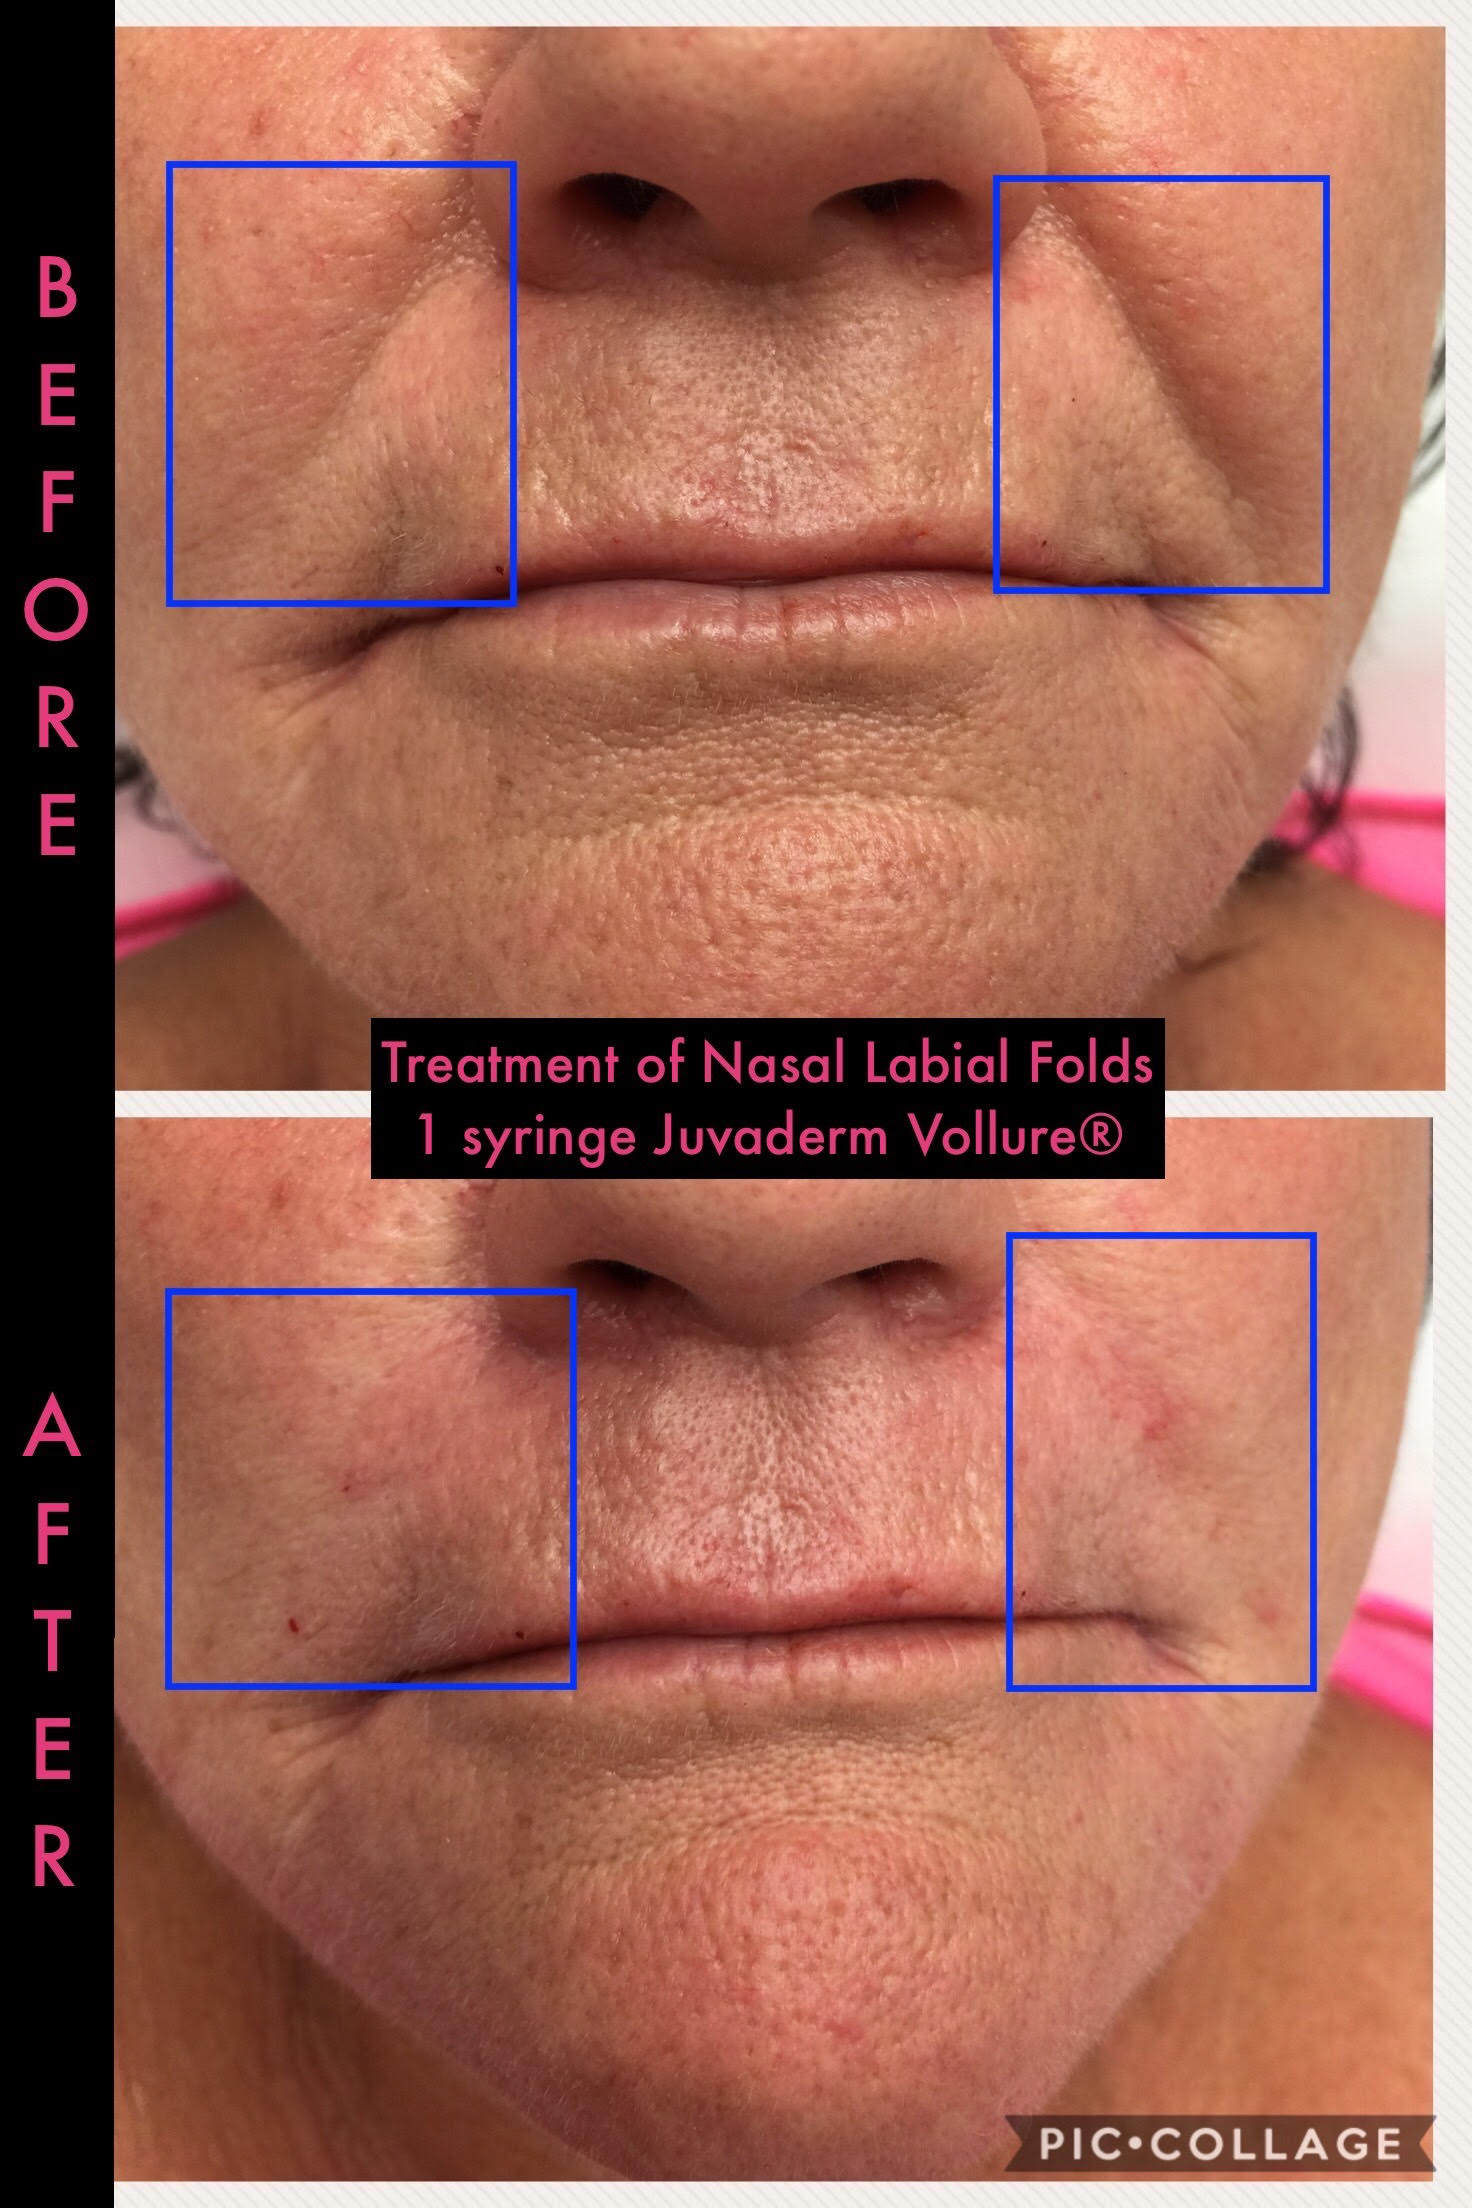 Dermal Fillers Before and After 4 -Glam RN